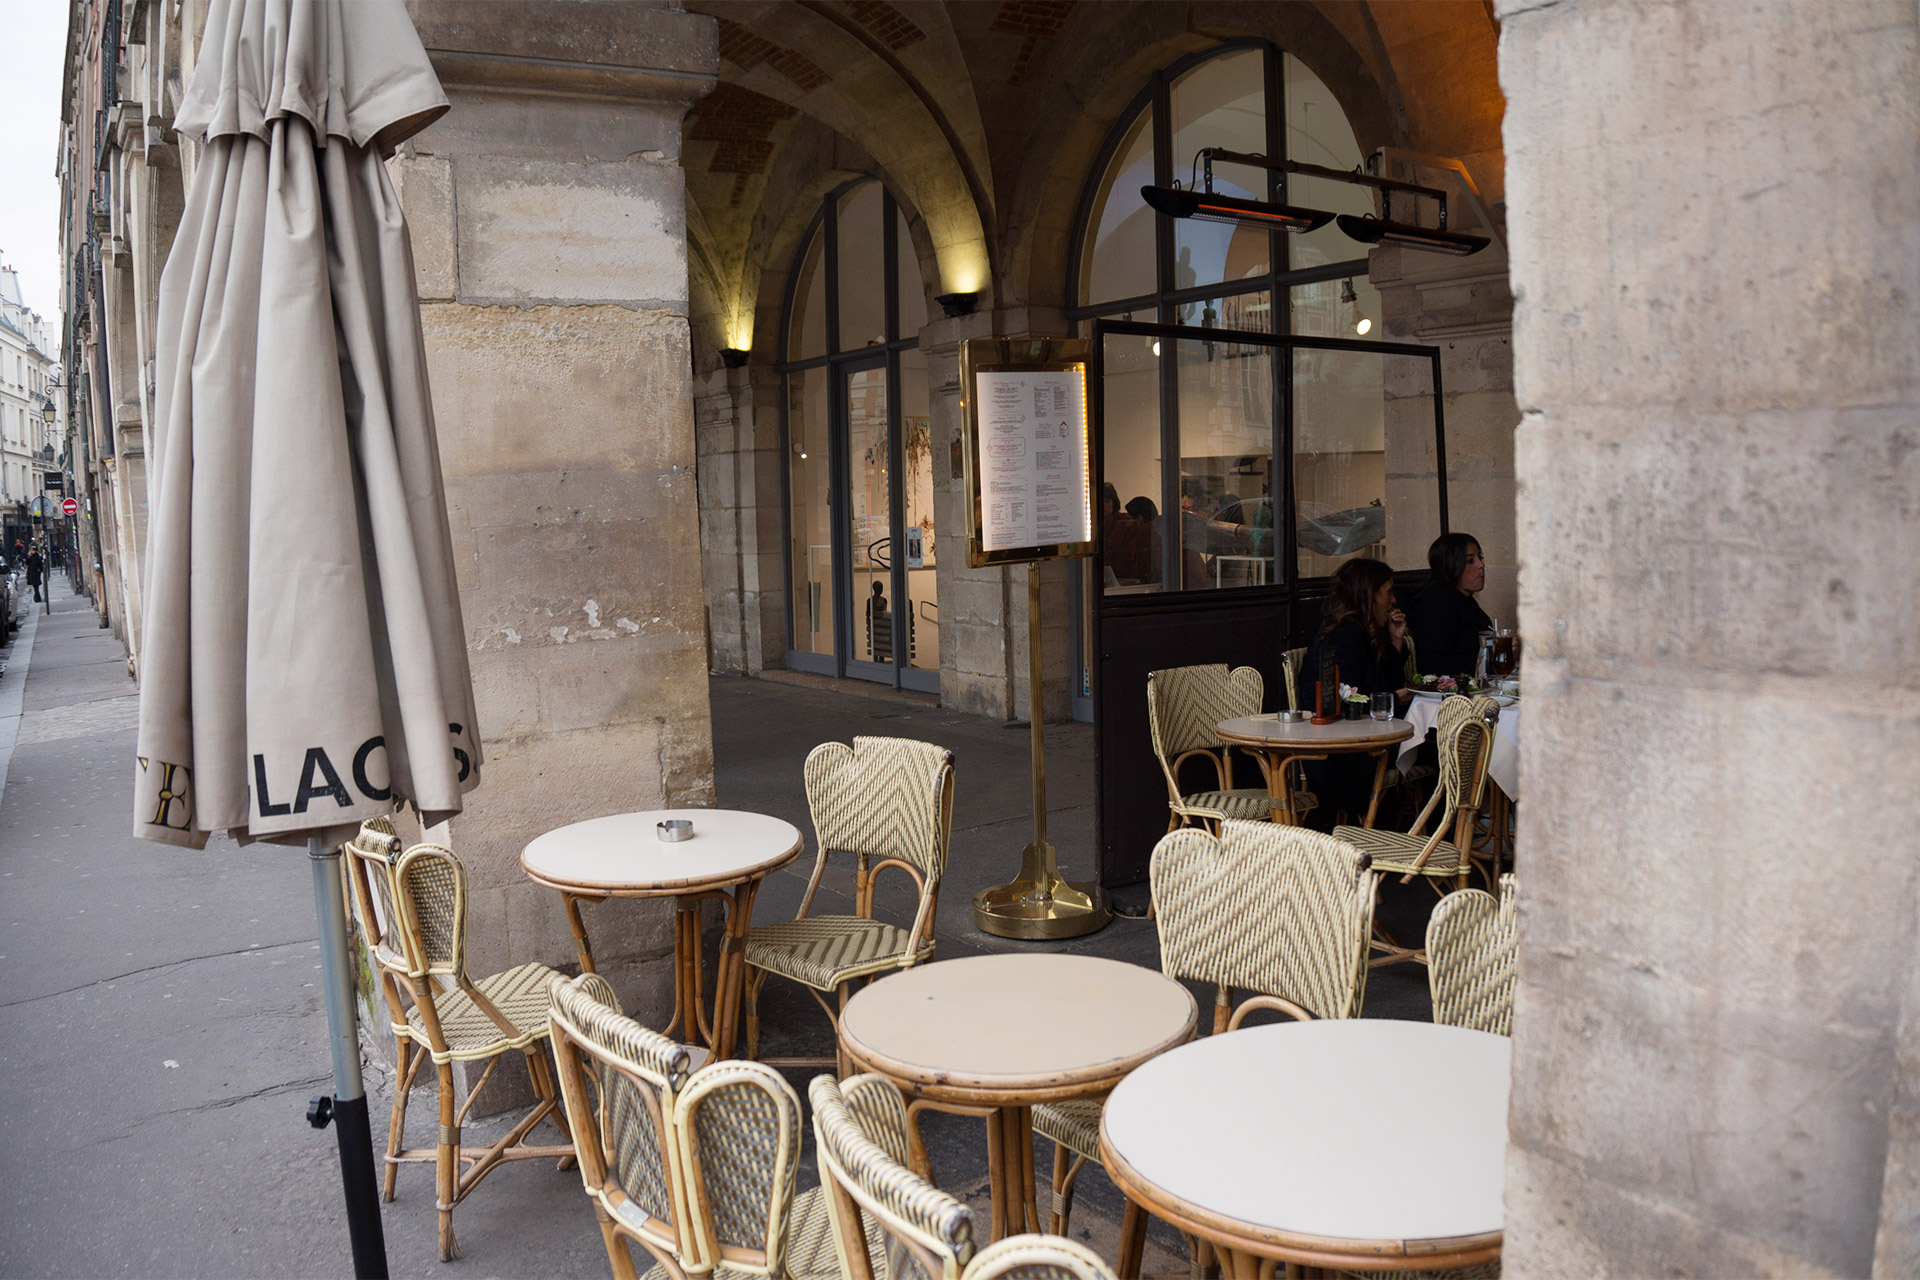 Cafe Carette at Place des Vosges